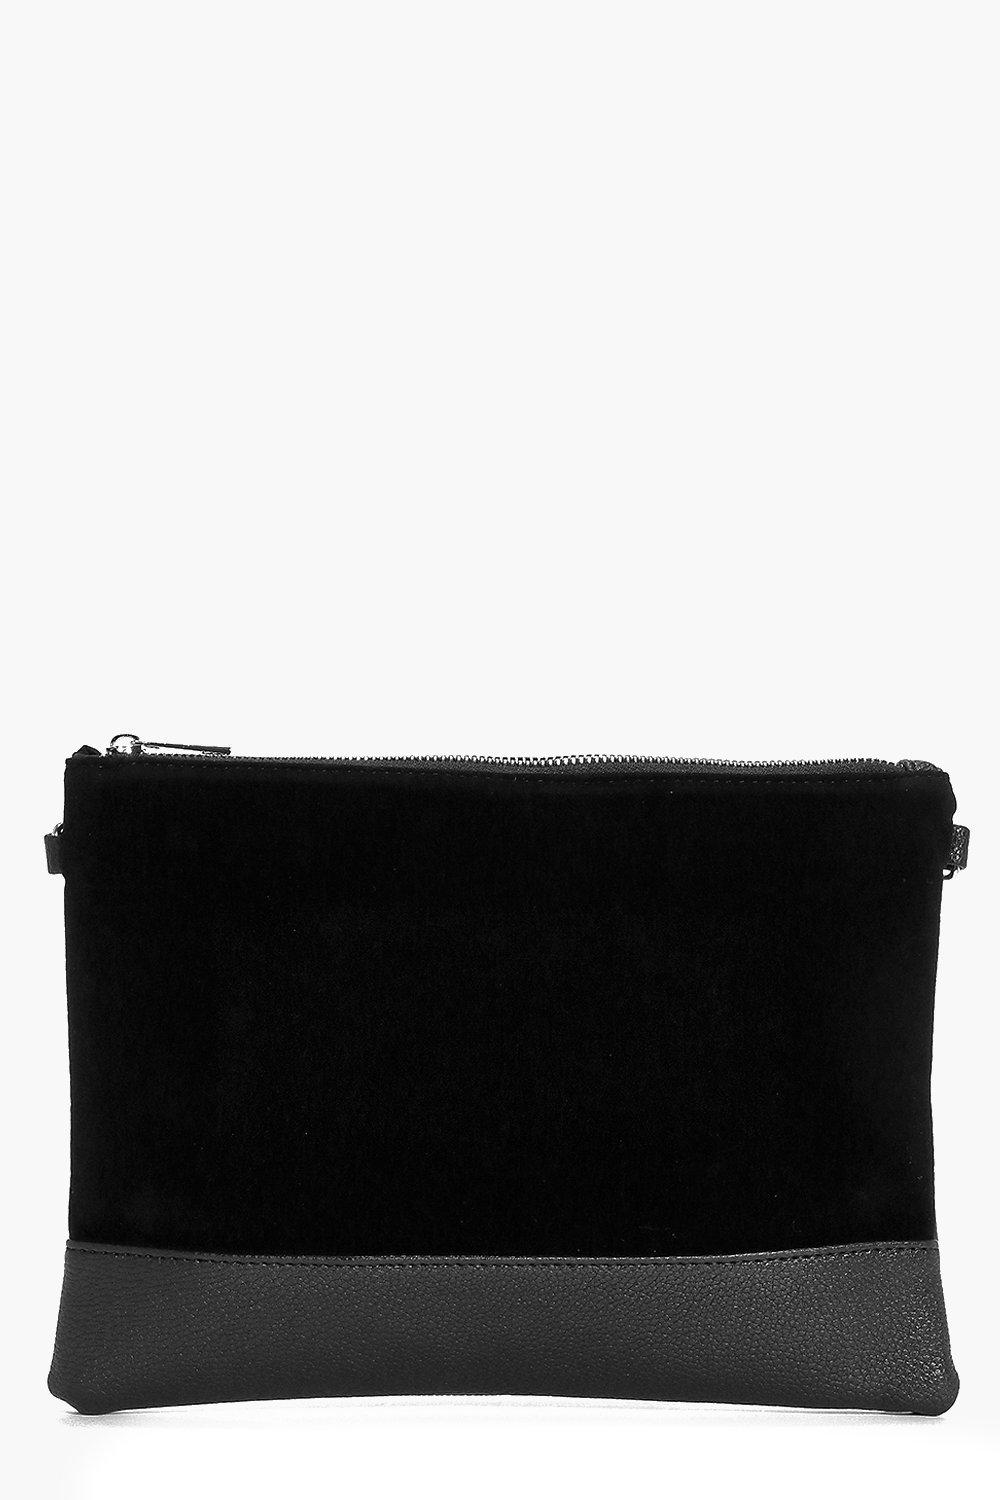 Contrast Texture Clutch Bag black